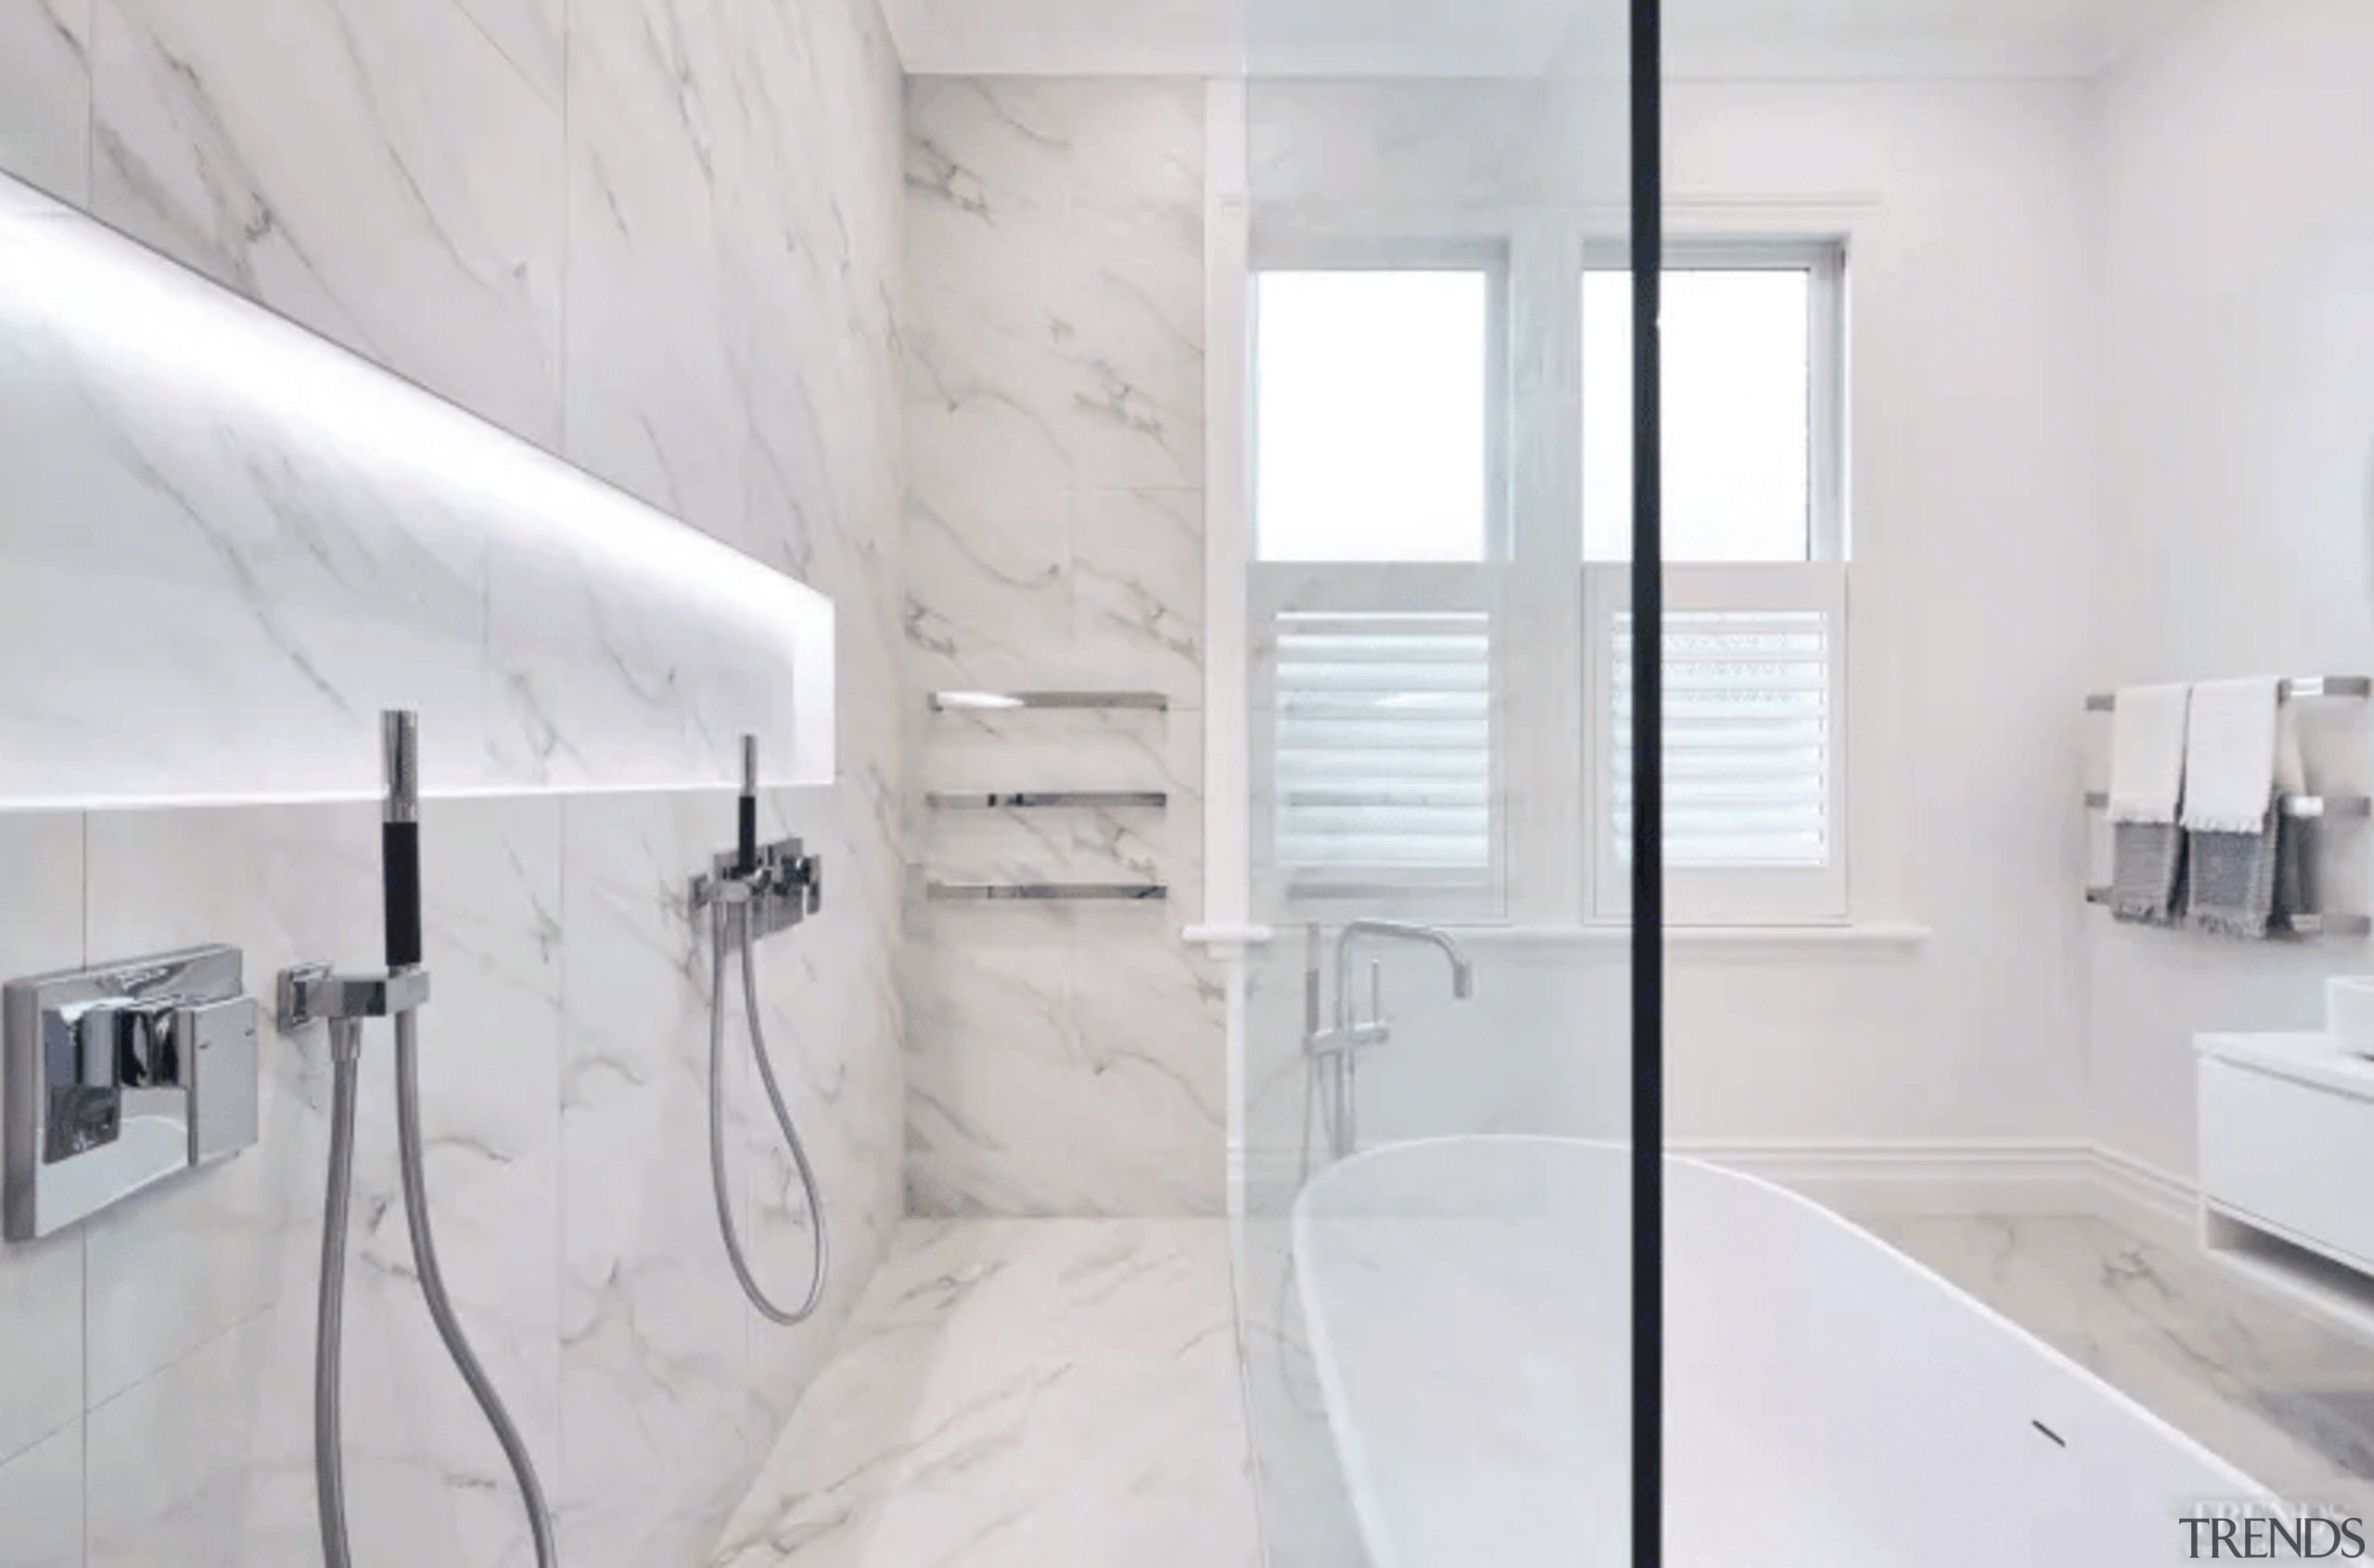 A Floor To Ceiling Glass Shower Wall Gives This Bathroom Bathroom, Floor,